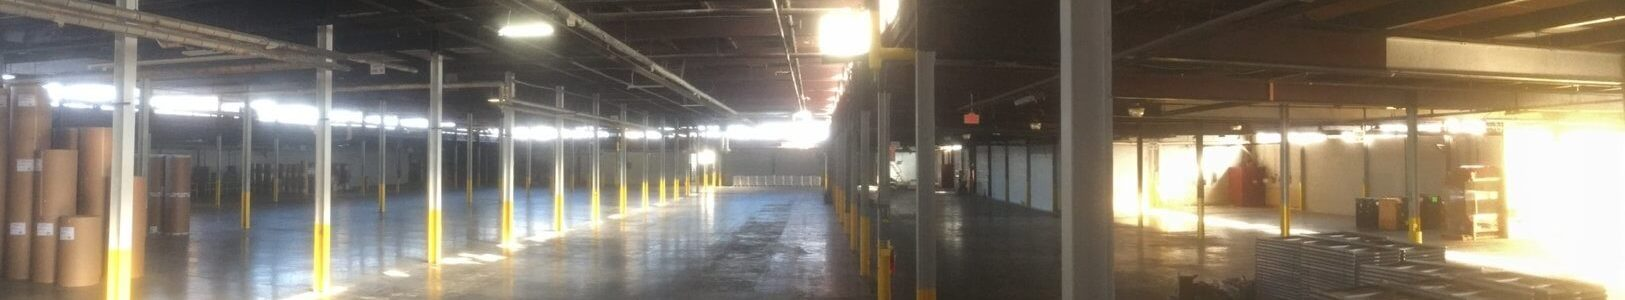 empty warehouse space albany ny